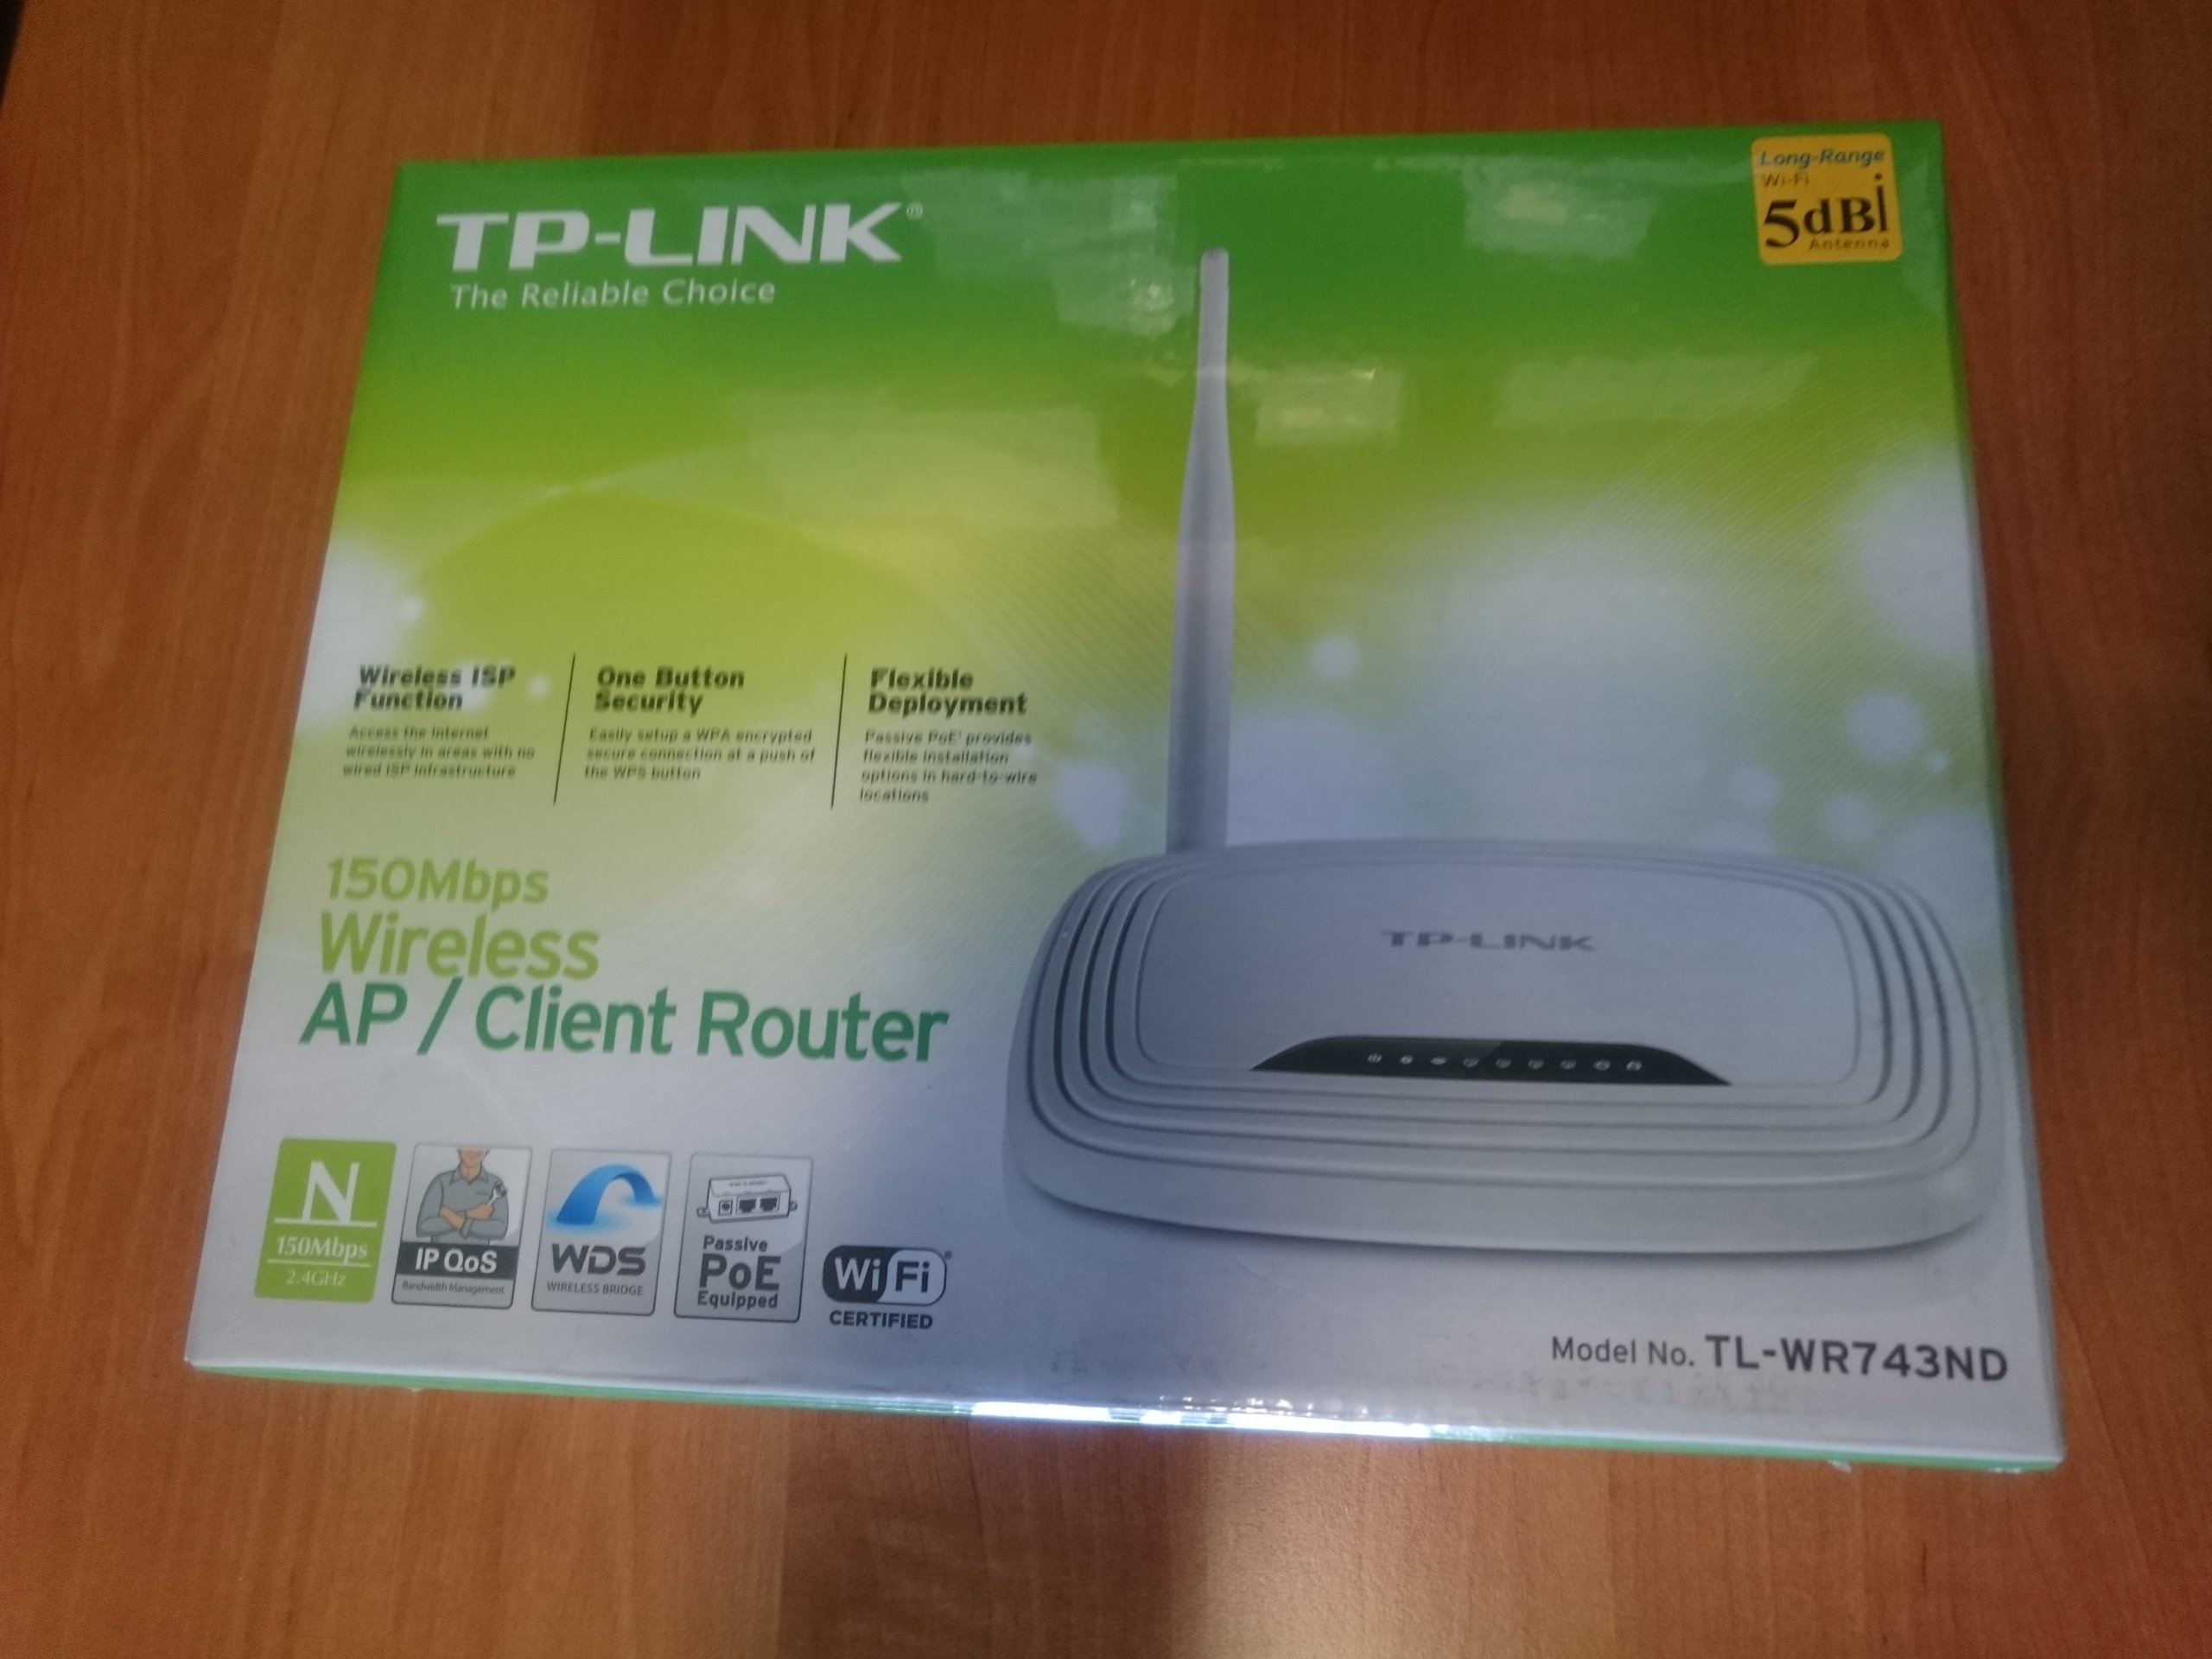 TP-LINK TL-WR743ND V2 ROUTER DRIVER FOR MAC